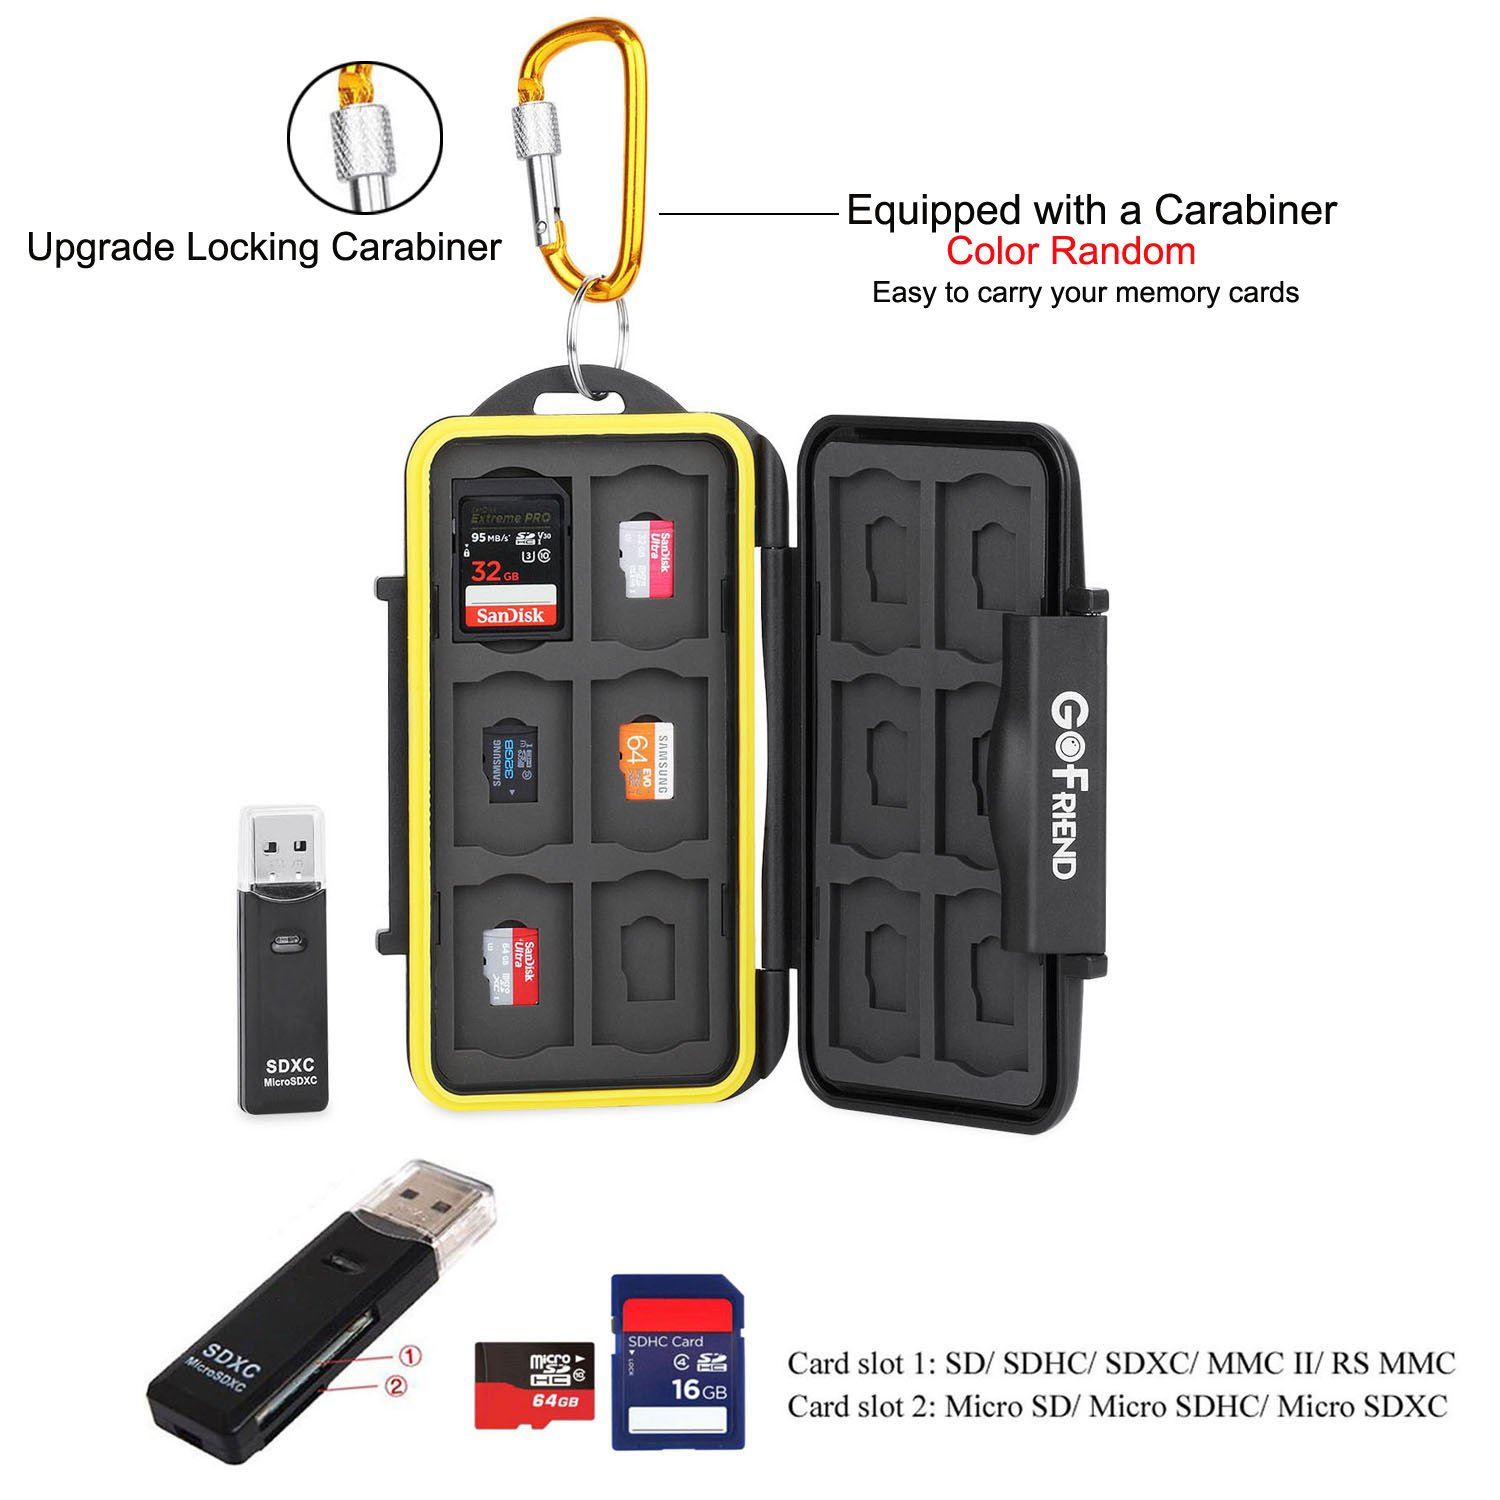 GoFriend Water-Resistant 24 Slots Memory Card Carrying Cases Professional Anti-shock Holder Storage SD SDHC SDXC and Micro SD TF Cards Protector Cover With Carabiner & Card Reader by GoFriend (Image #5)